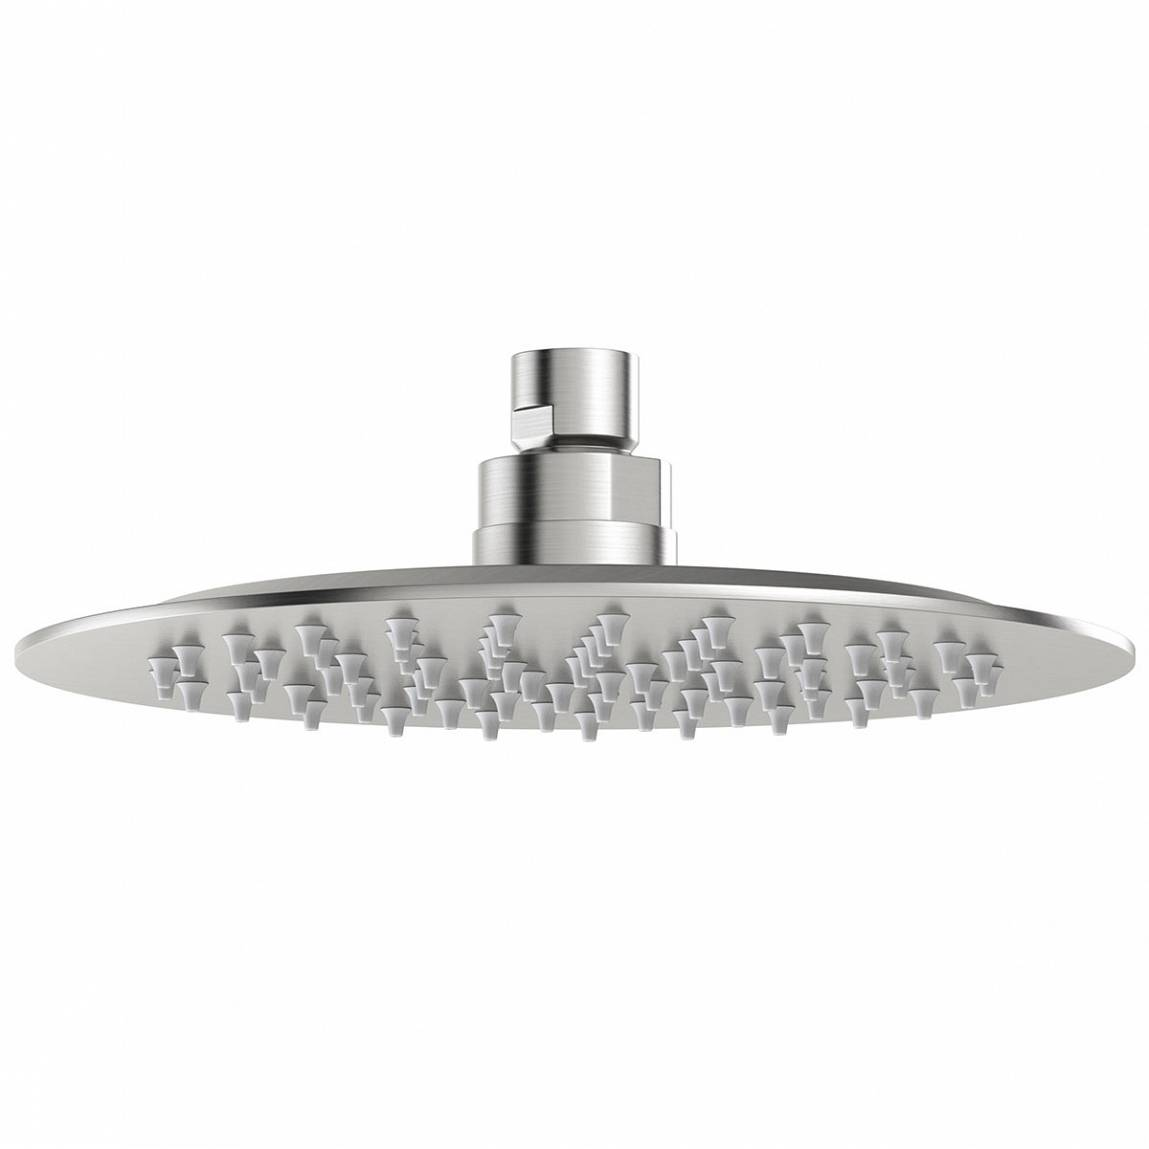 Image of Brushed Stainless Steel Waifer Shower Head Round 200mm